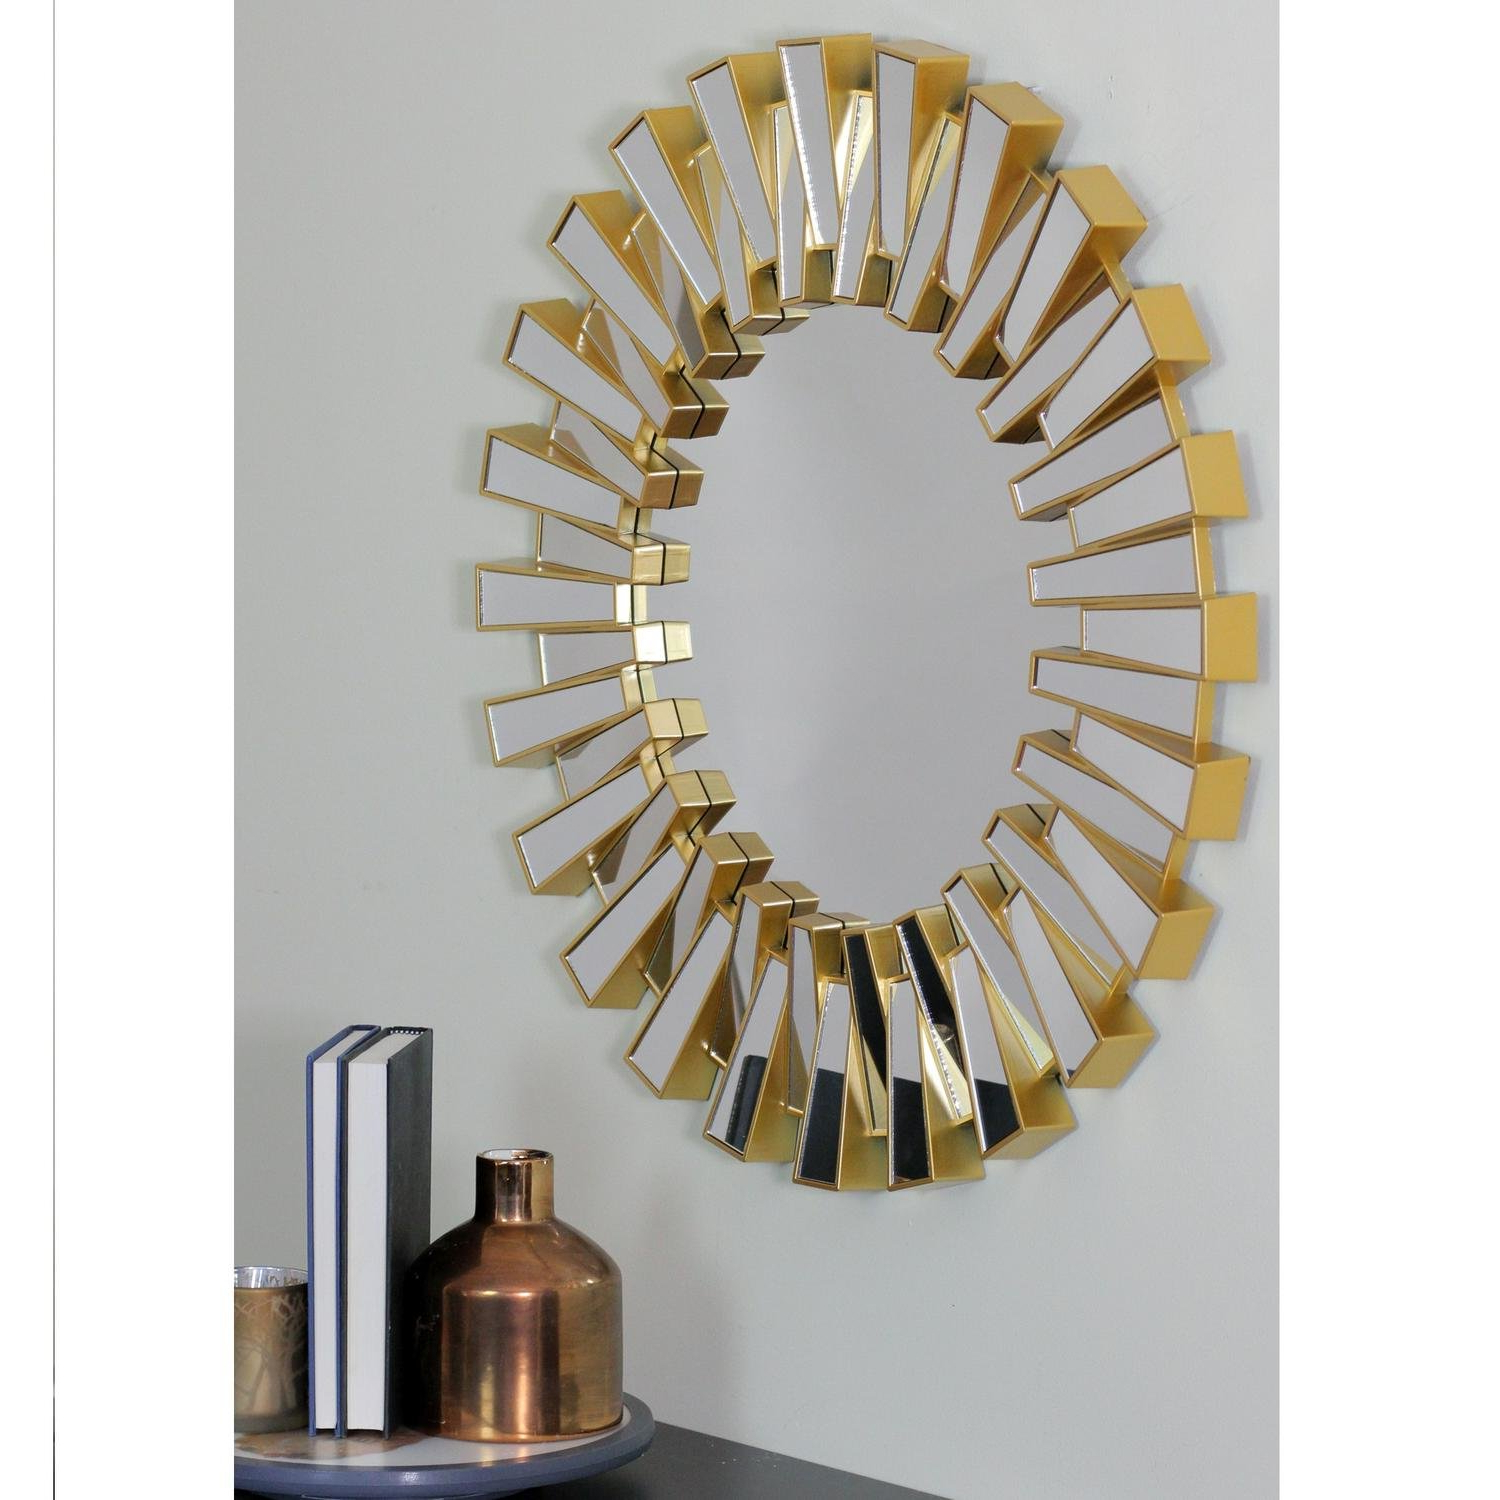 Widely Used Richards Aztec Inspired Sparkling Sunburst Round Wall Mirror In Estrela Modern Sunburst Metal Wall Mirrors (Gallery 10 of 20)